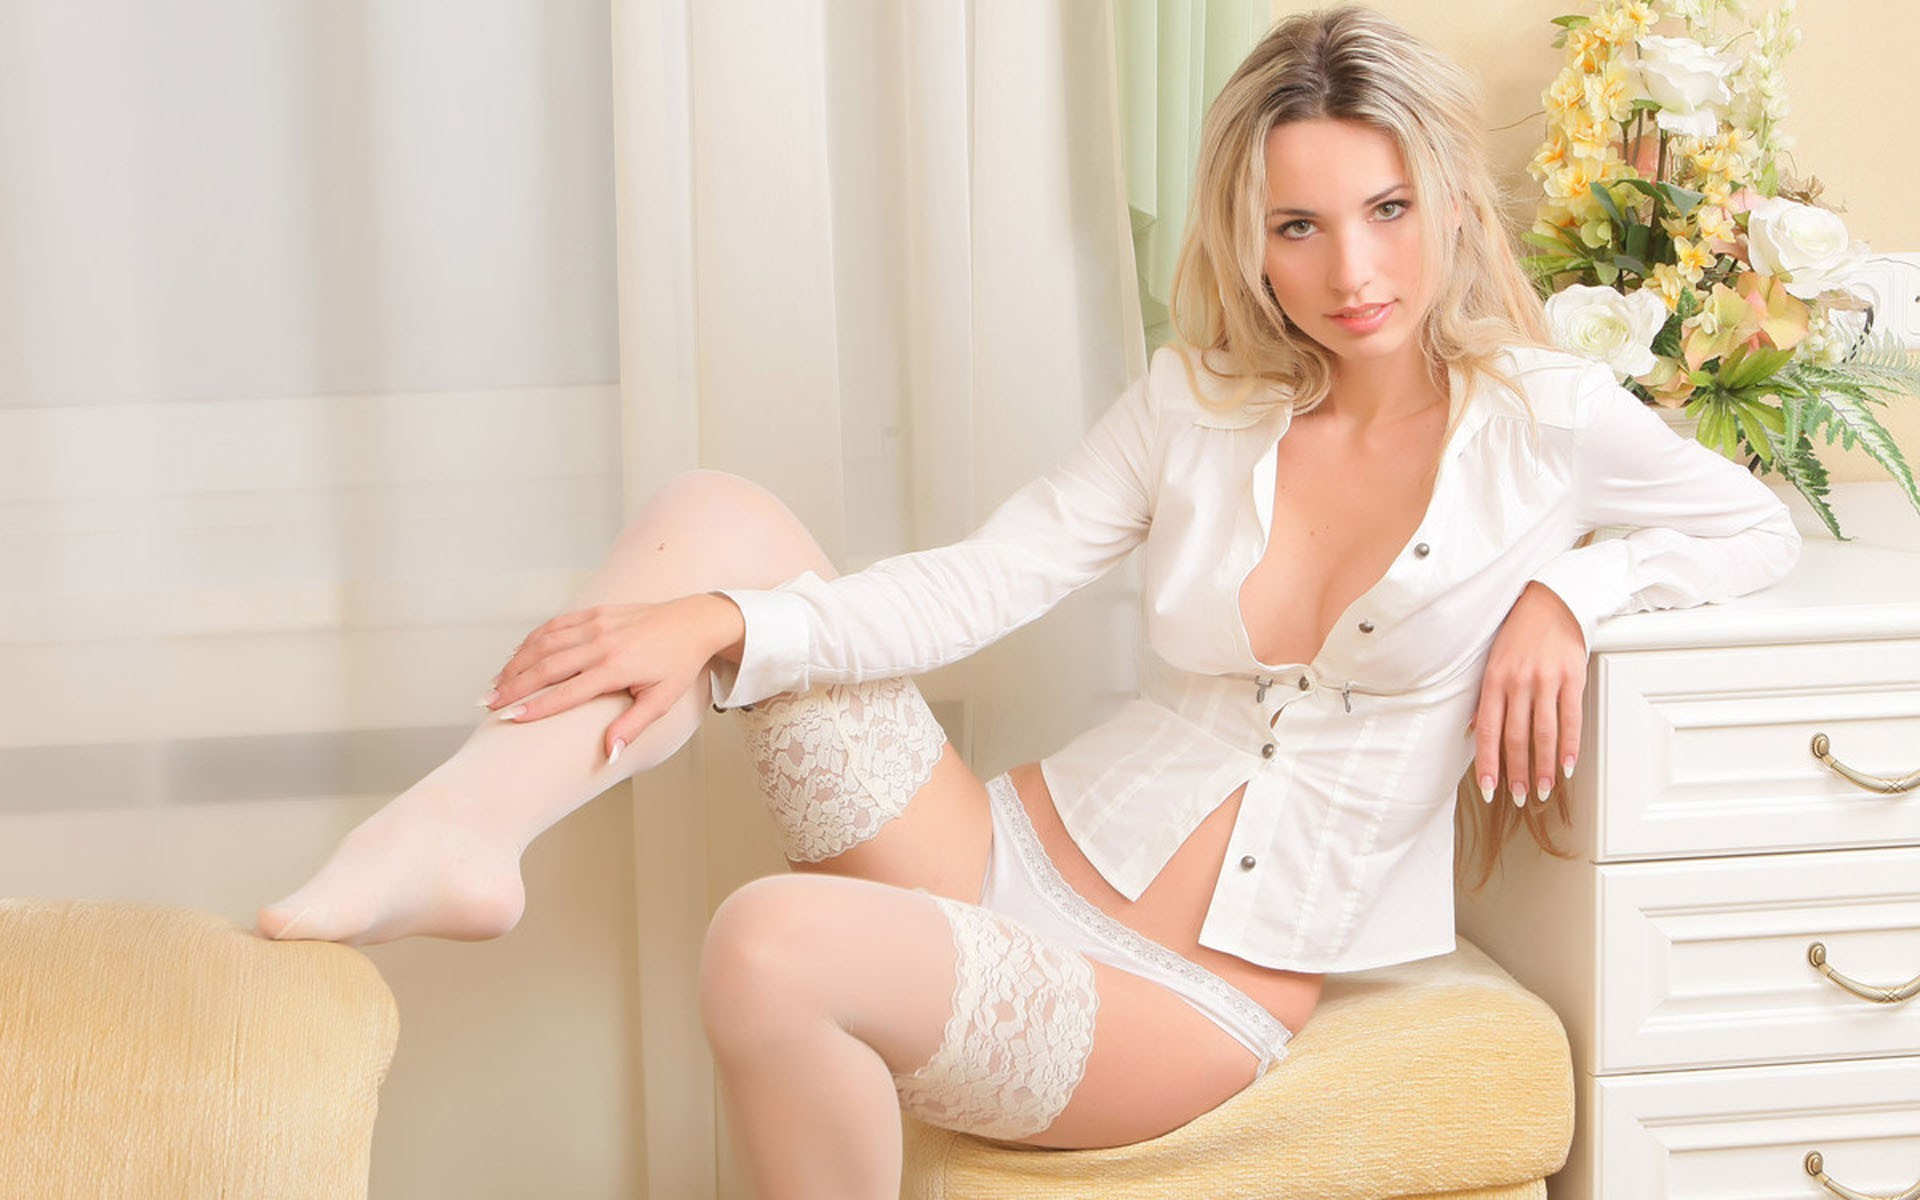 blondes woman panties white HD Wallpaper